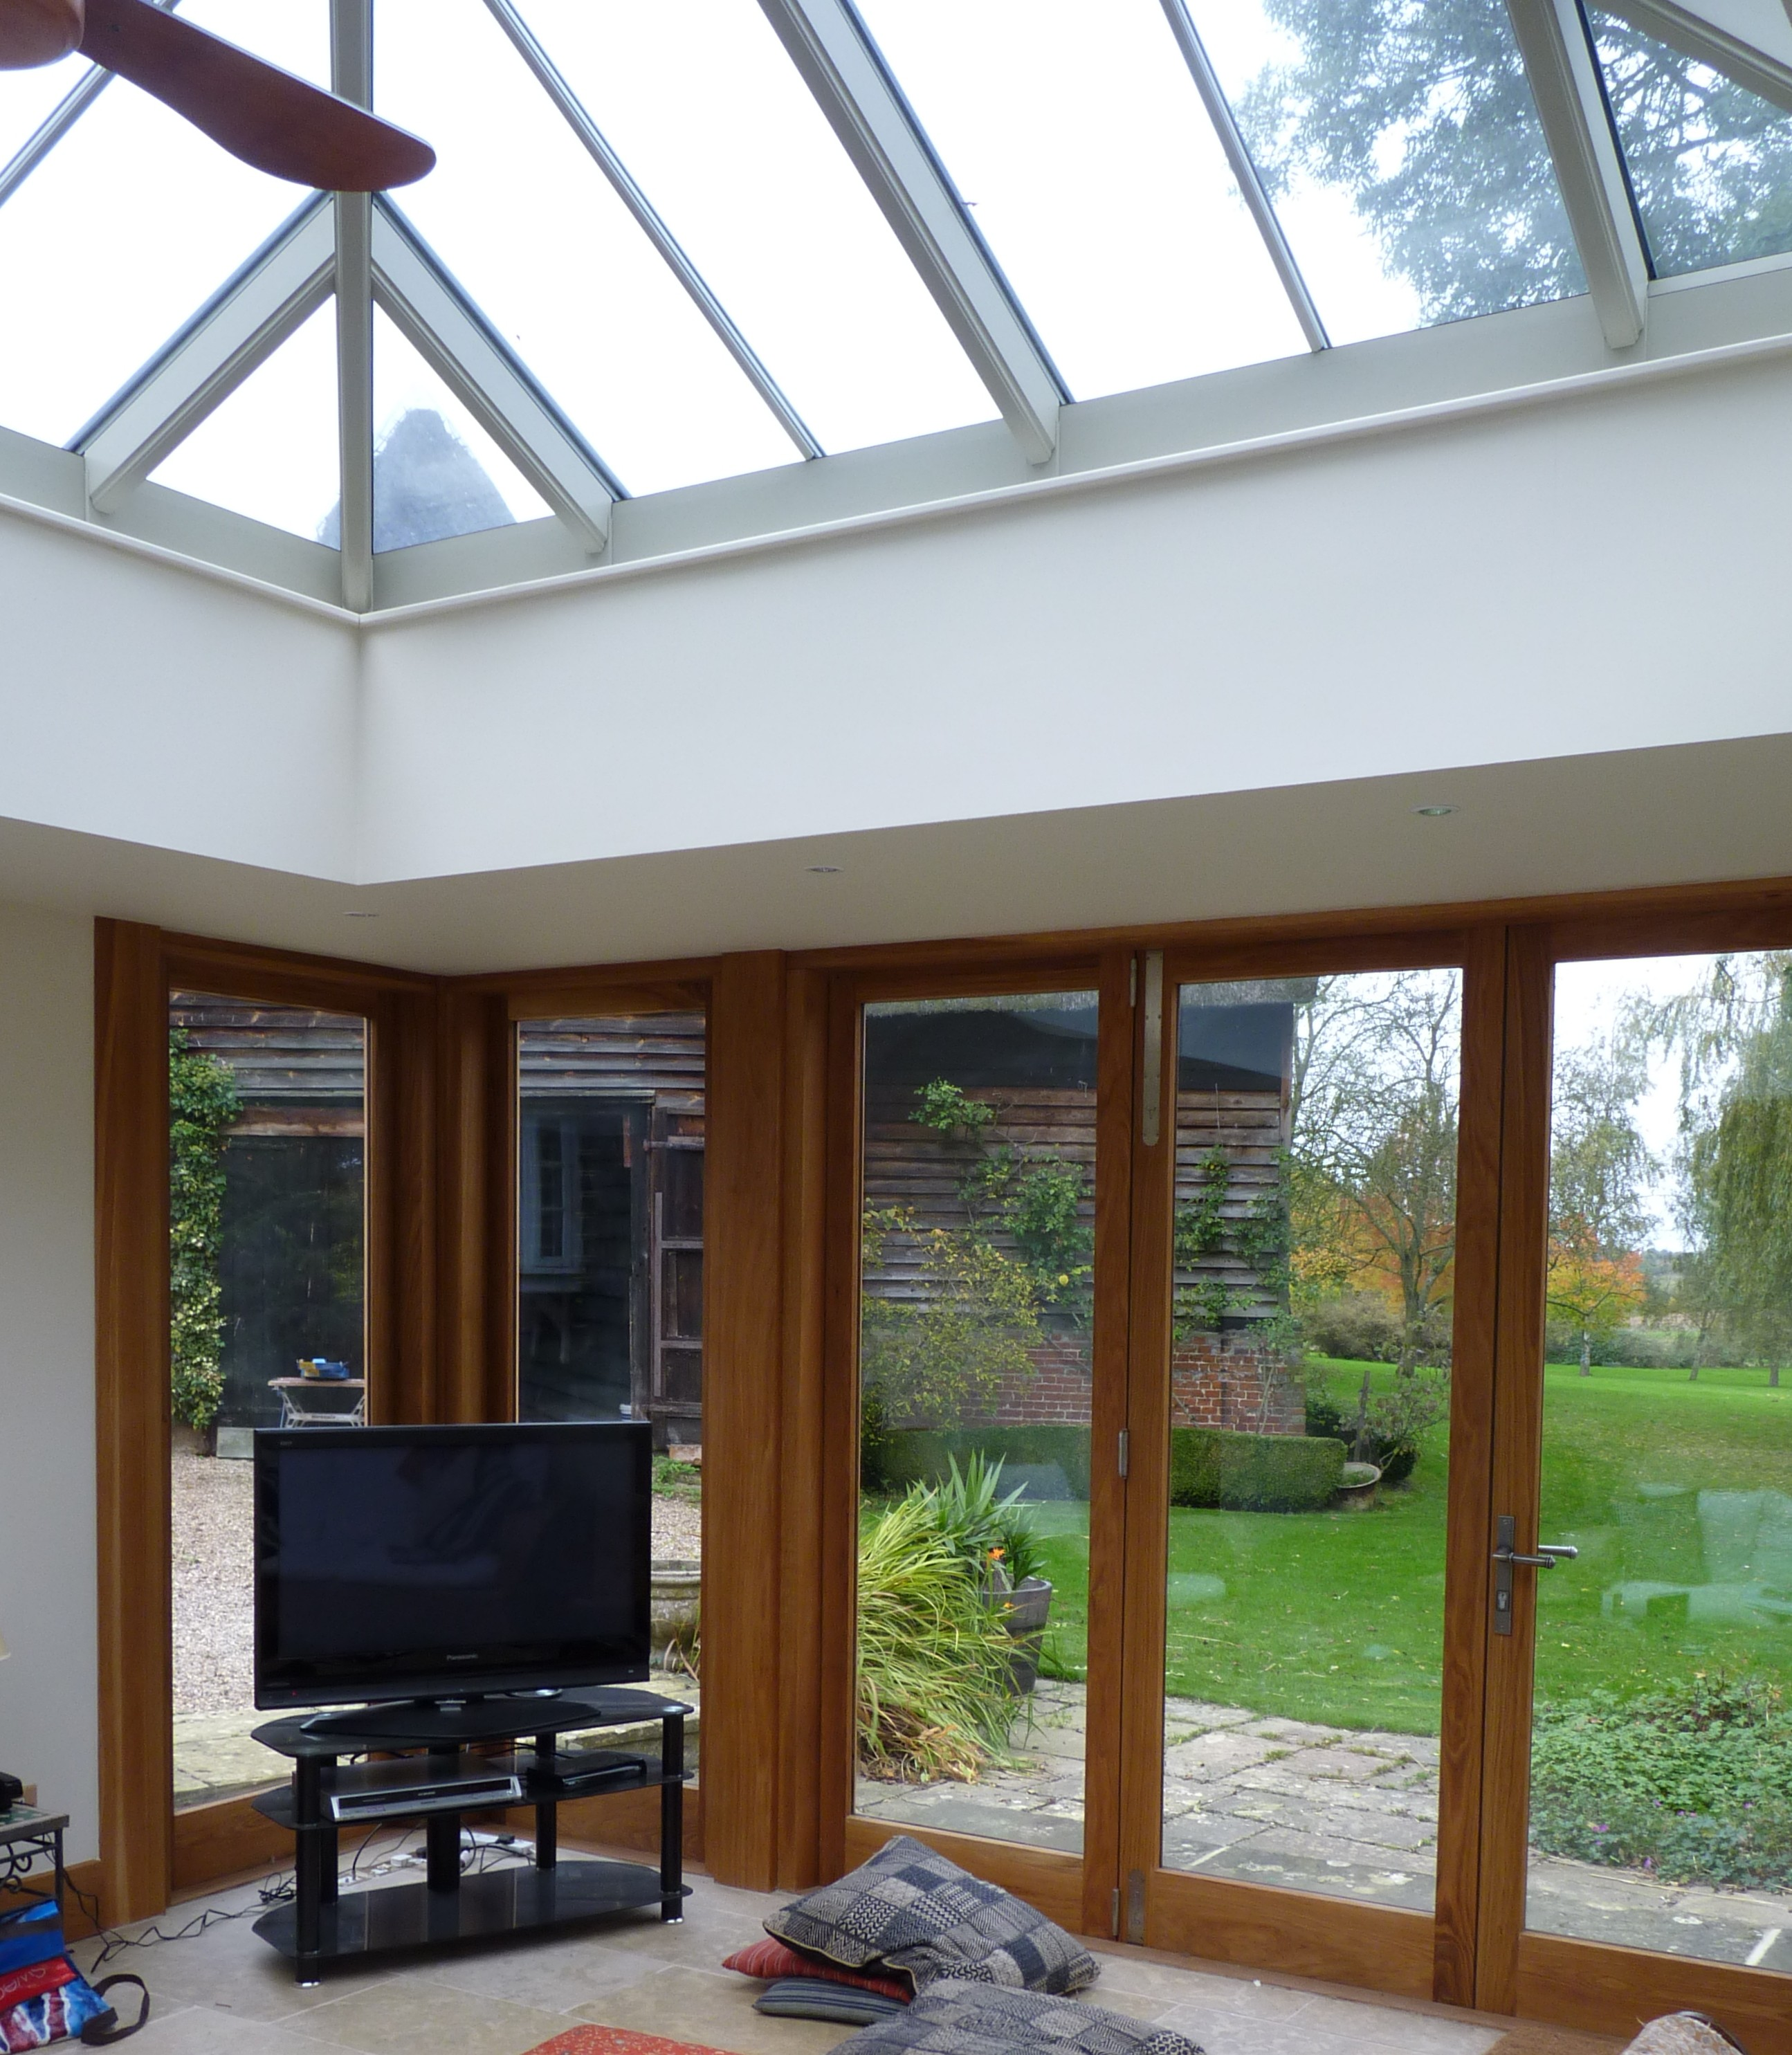 Garden rooms roof lights orangeries harrier gd for Garden room definition